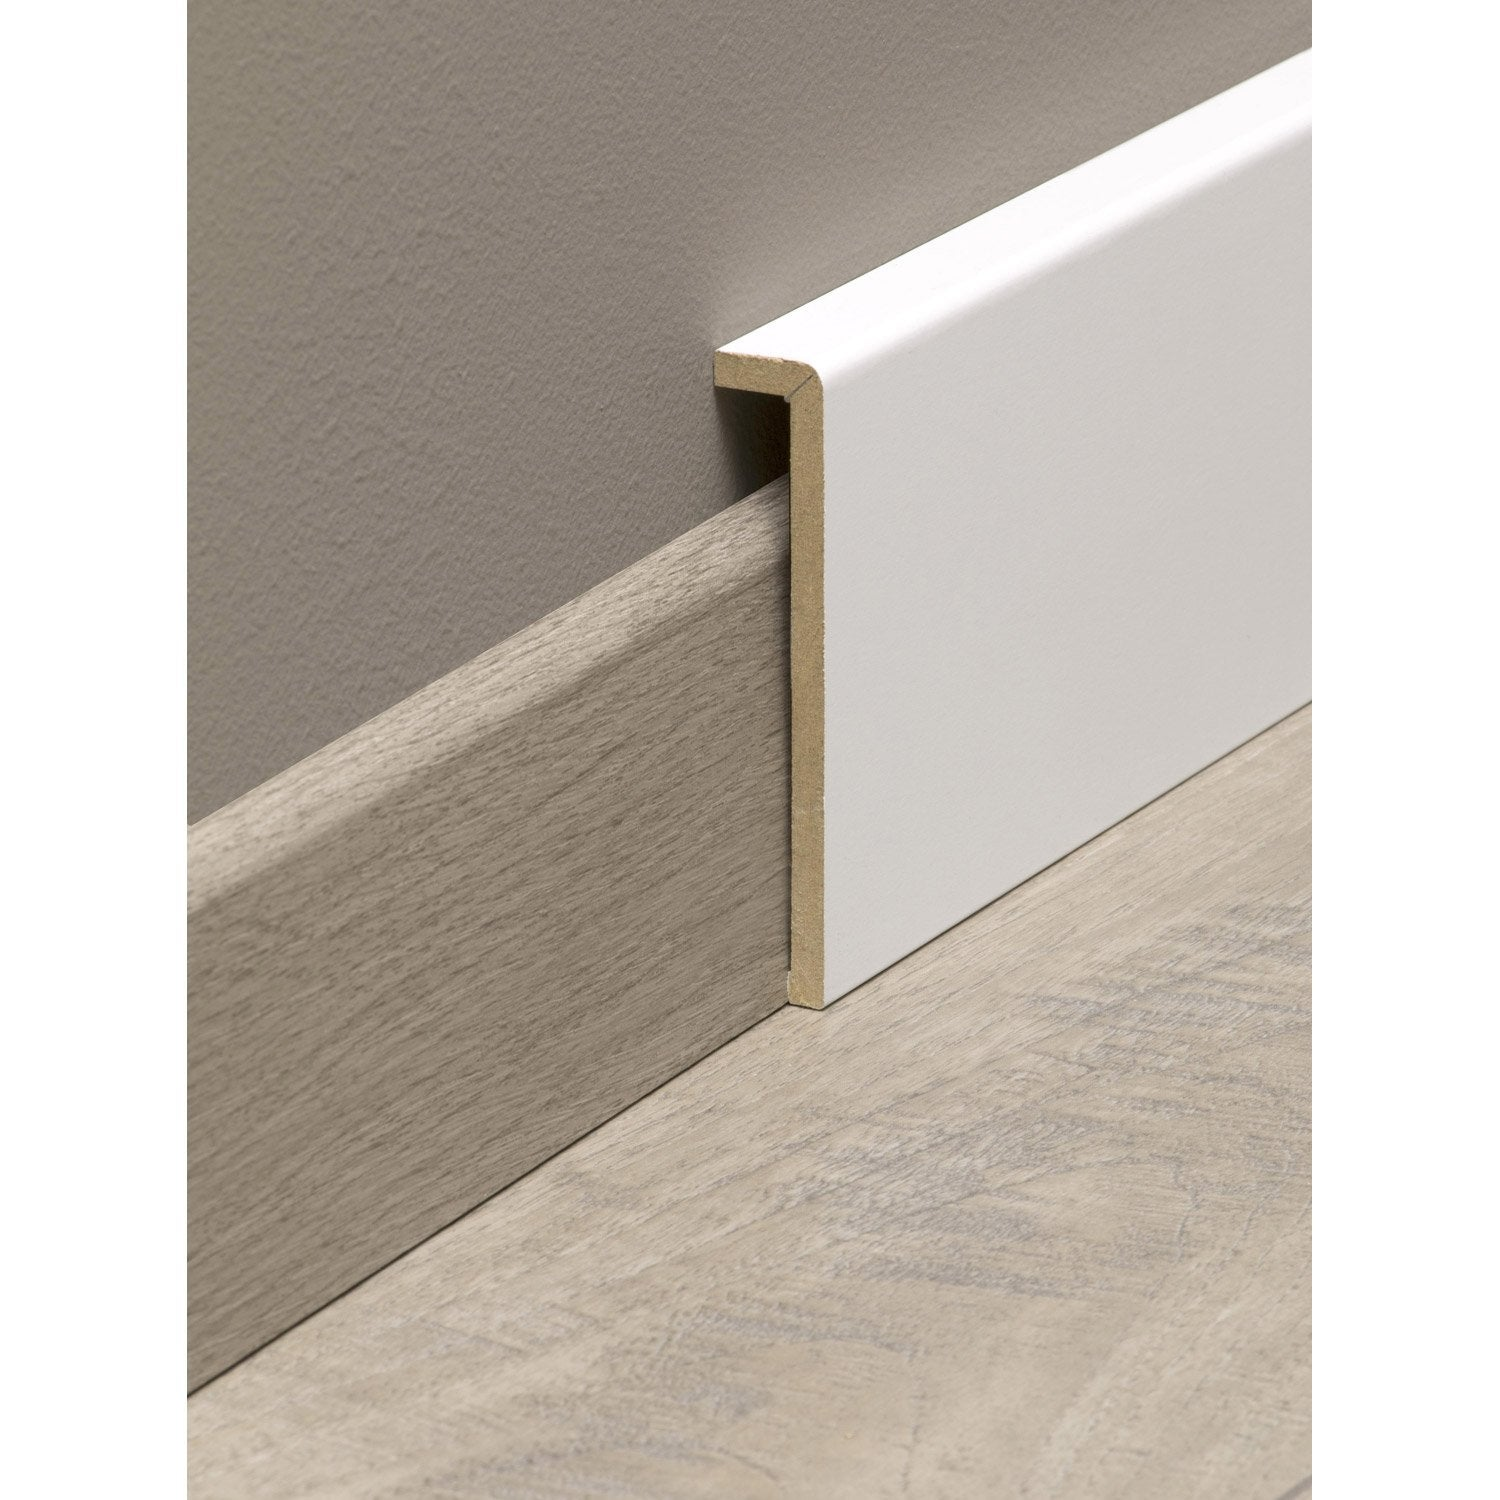 Surplinthe de r novation m dium mdf m lamin blanc 19 x for Plinthe pour carrelage